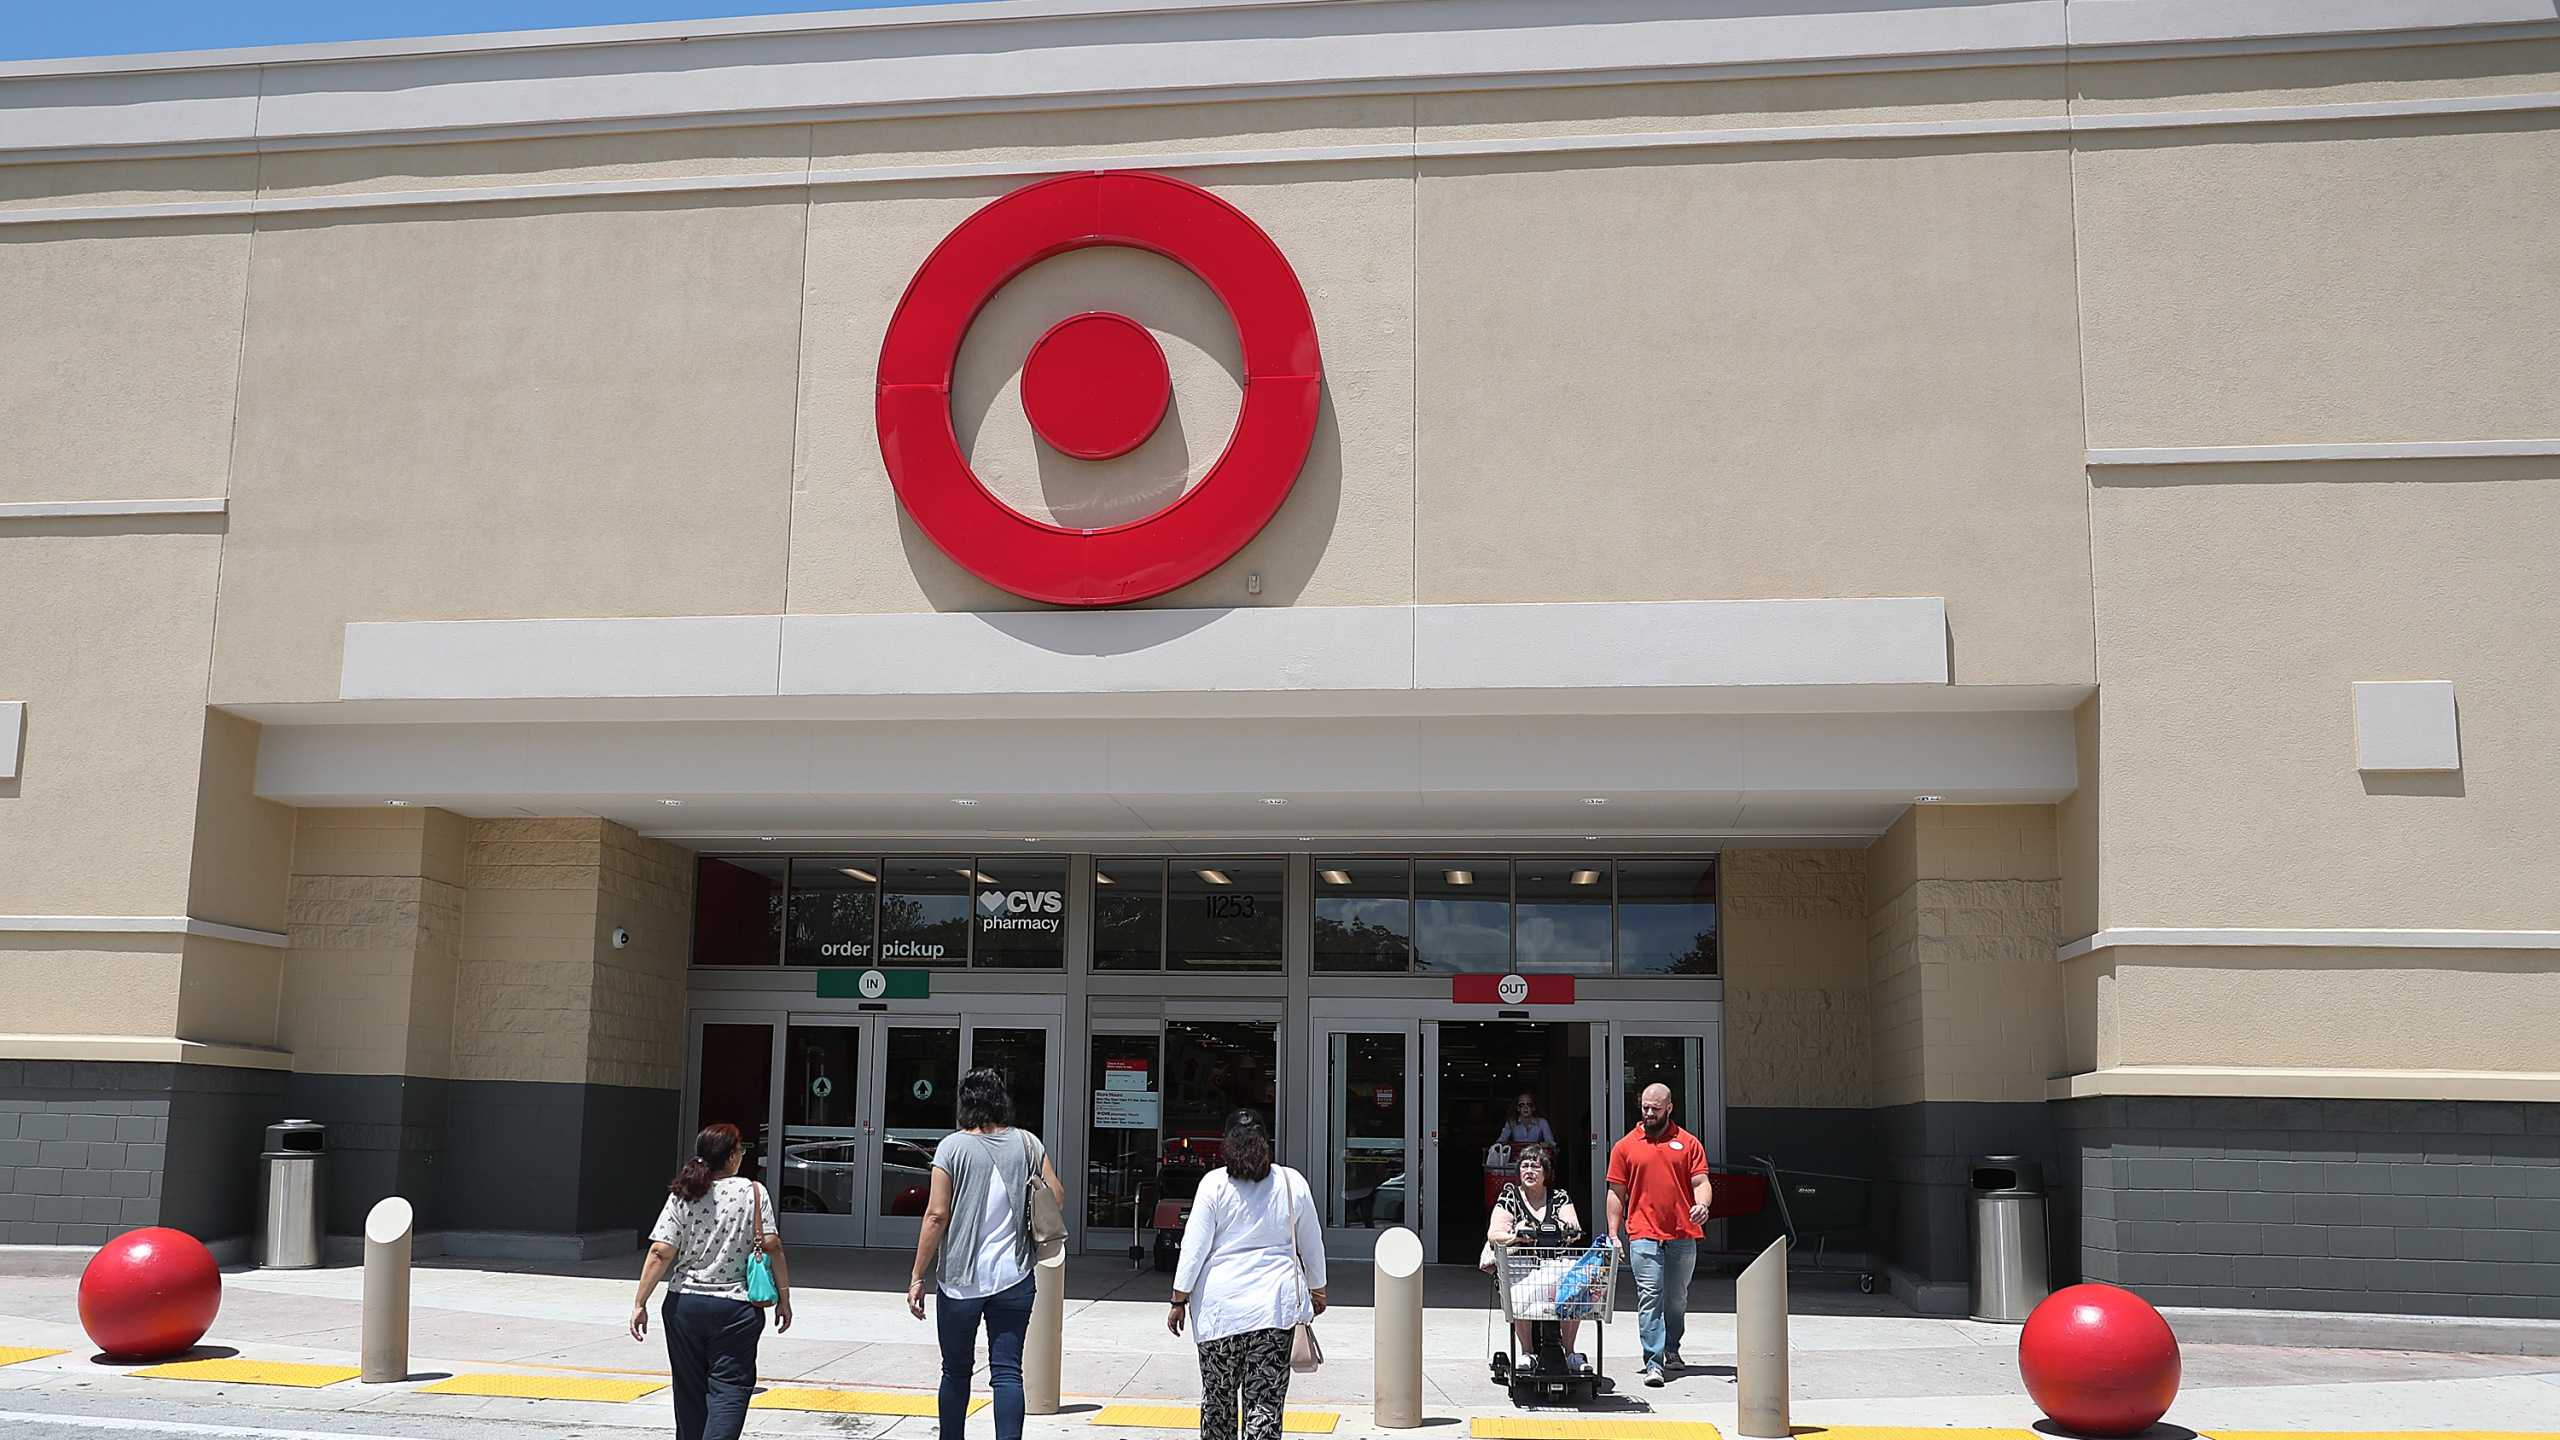 A Target store is seen on August 21, 2019 in Pembroke Pines, Florida. (Credit: Joe Raedle/Getty Images)